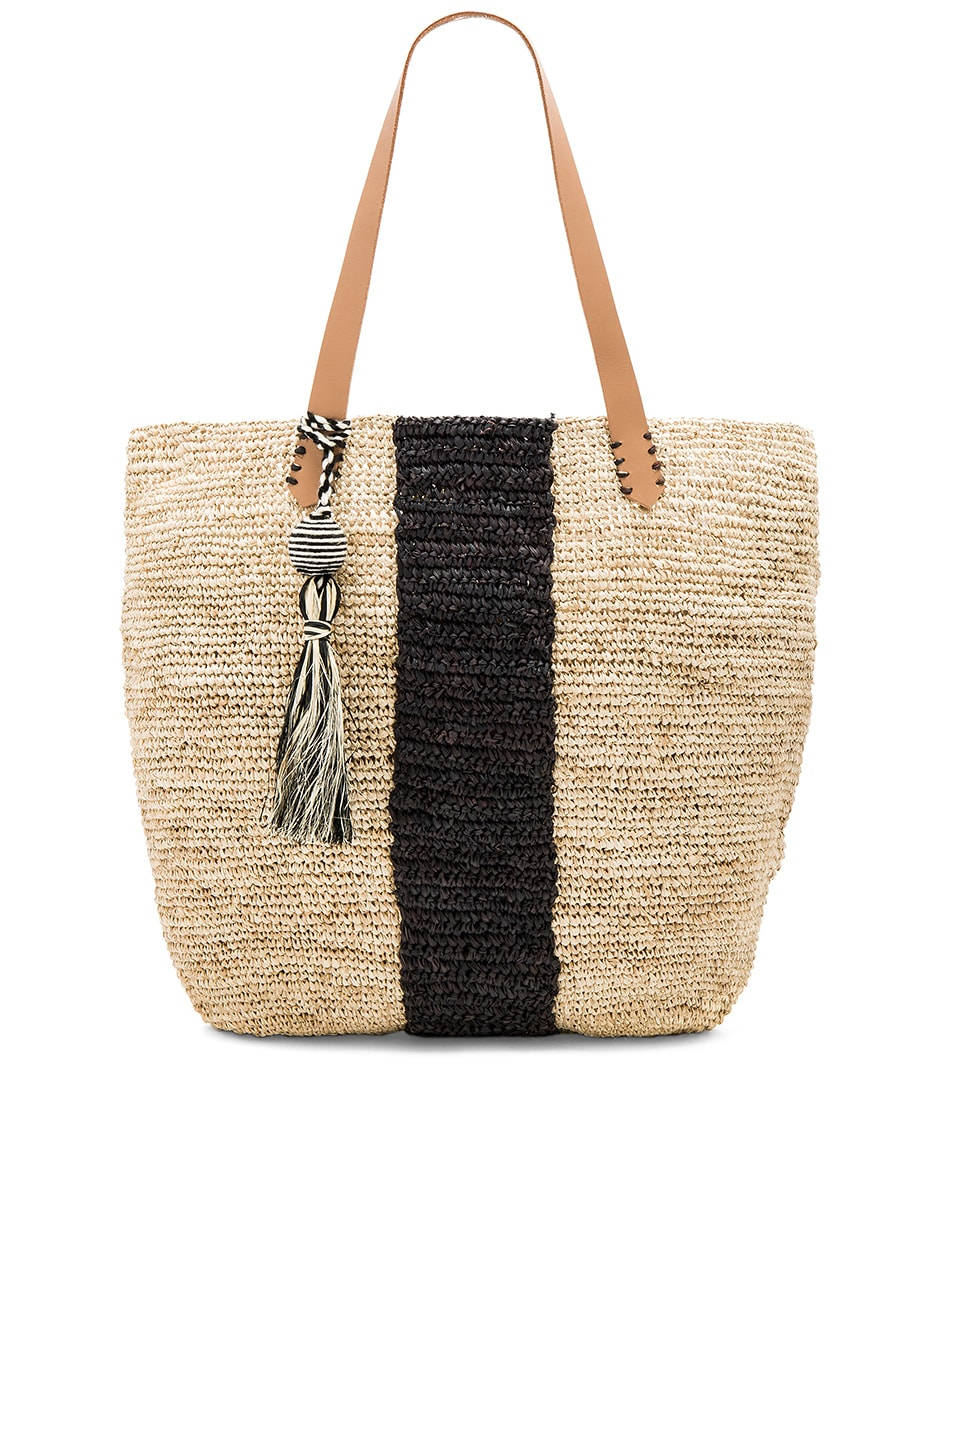 KAYU Pipeline Tote Bag in Natural & Black